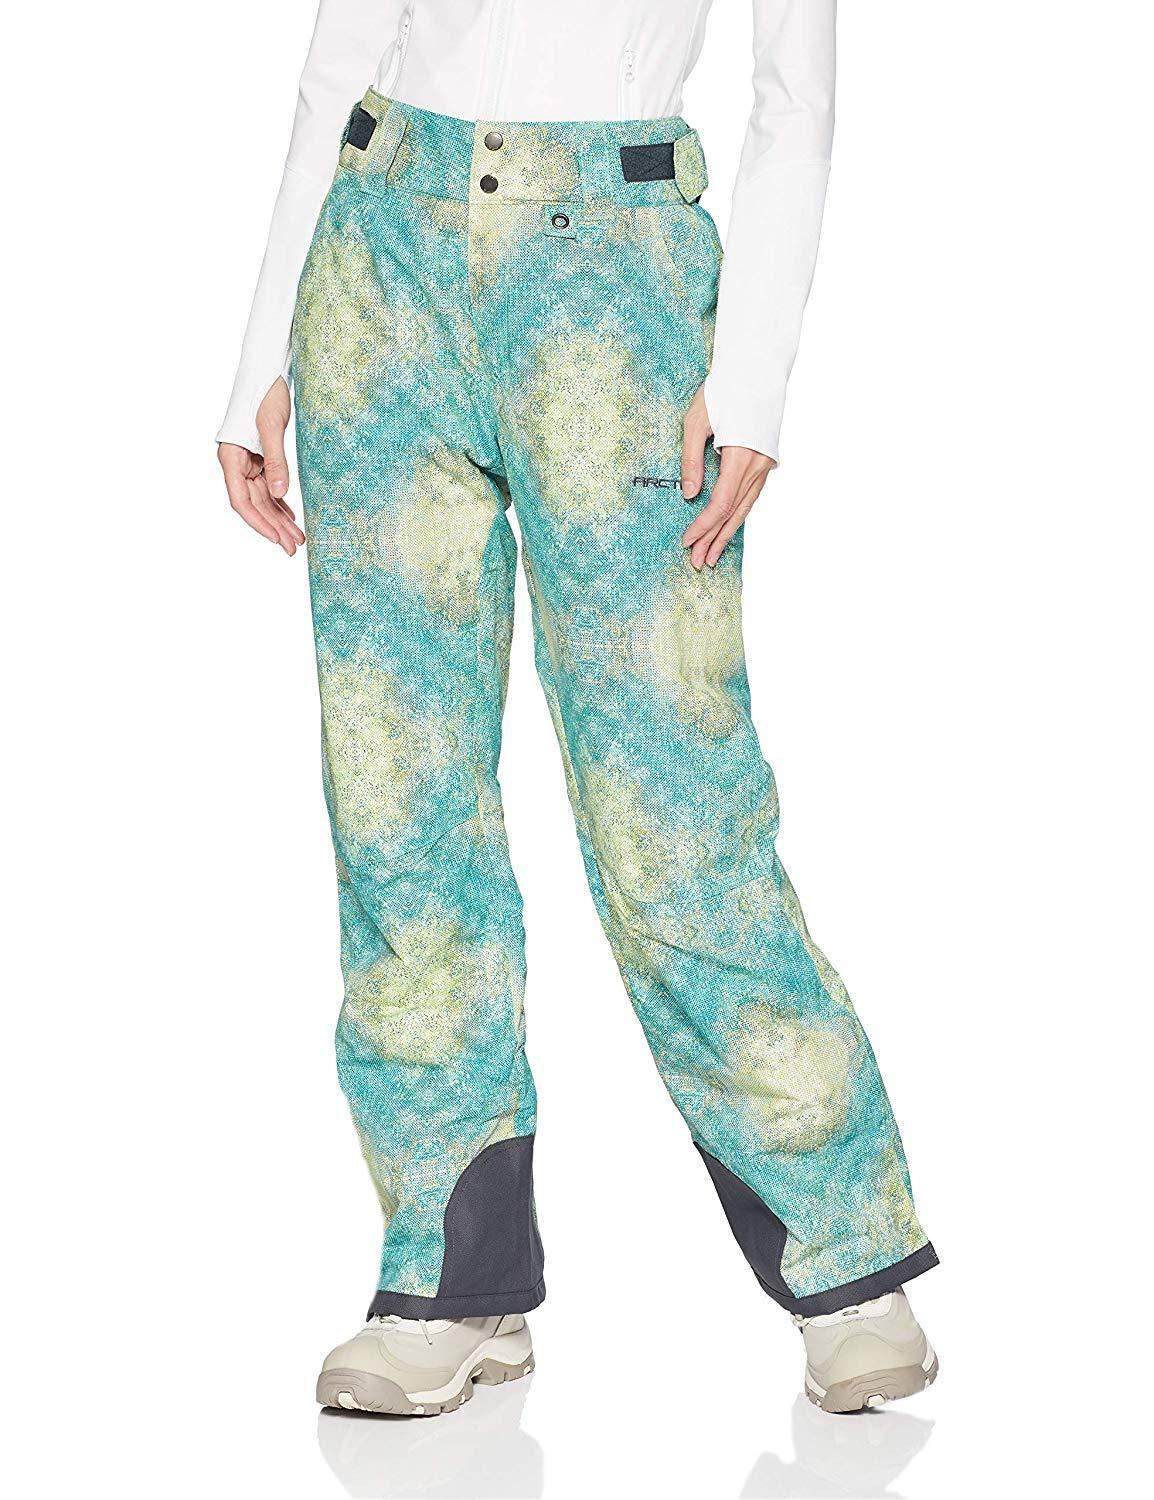 Arctix Insulated Snow Pants - Women's - Ombre Teal - Small